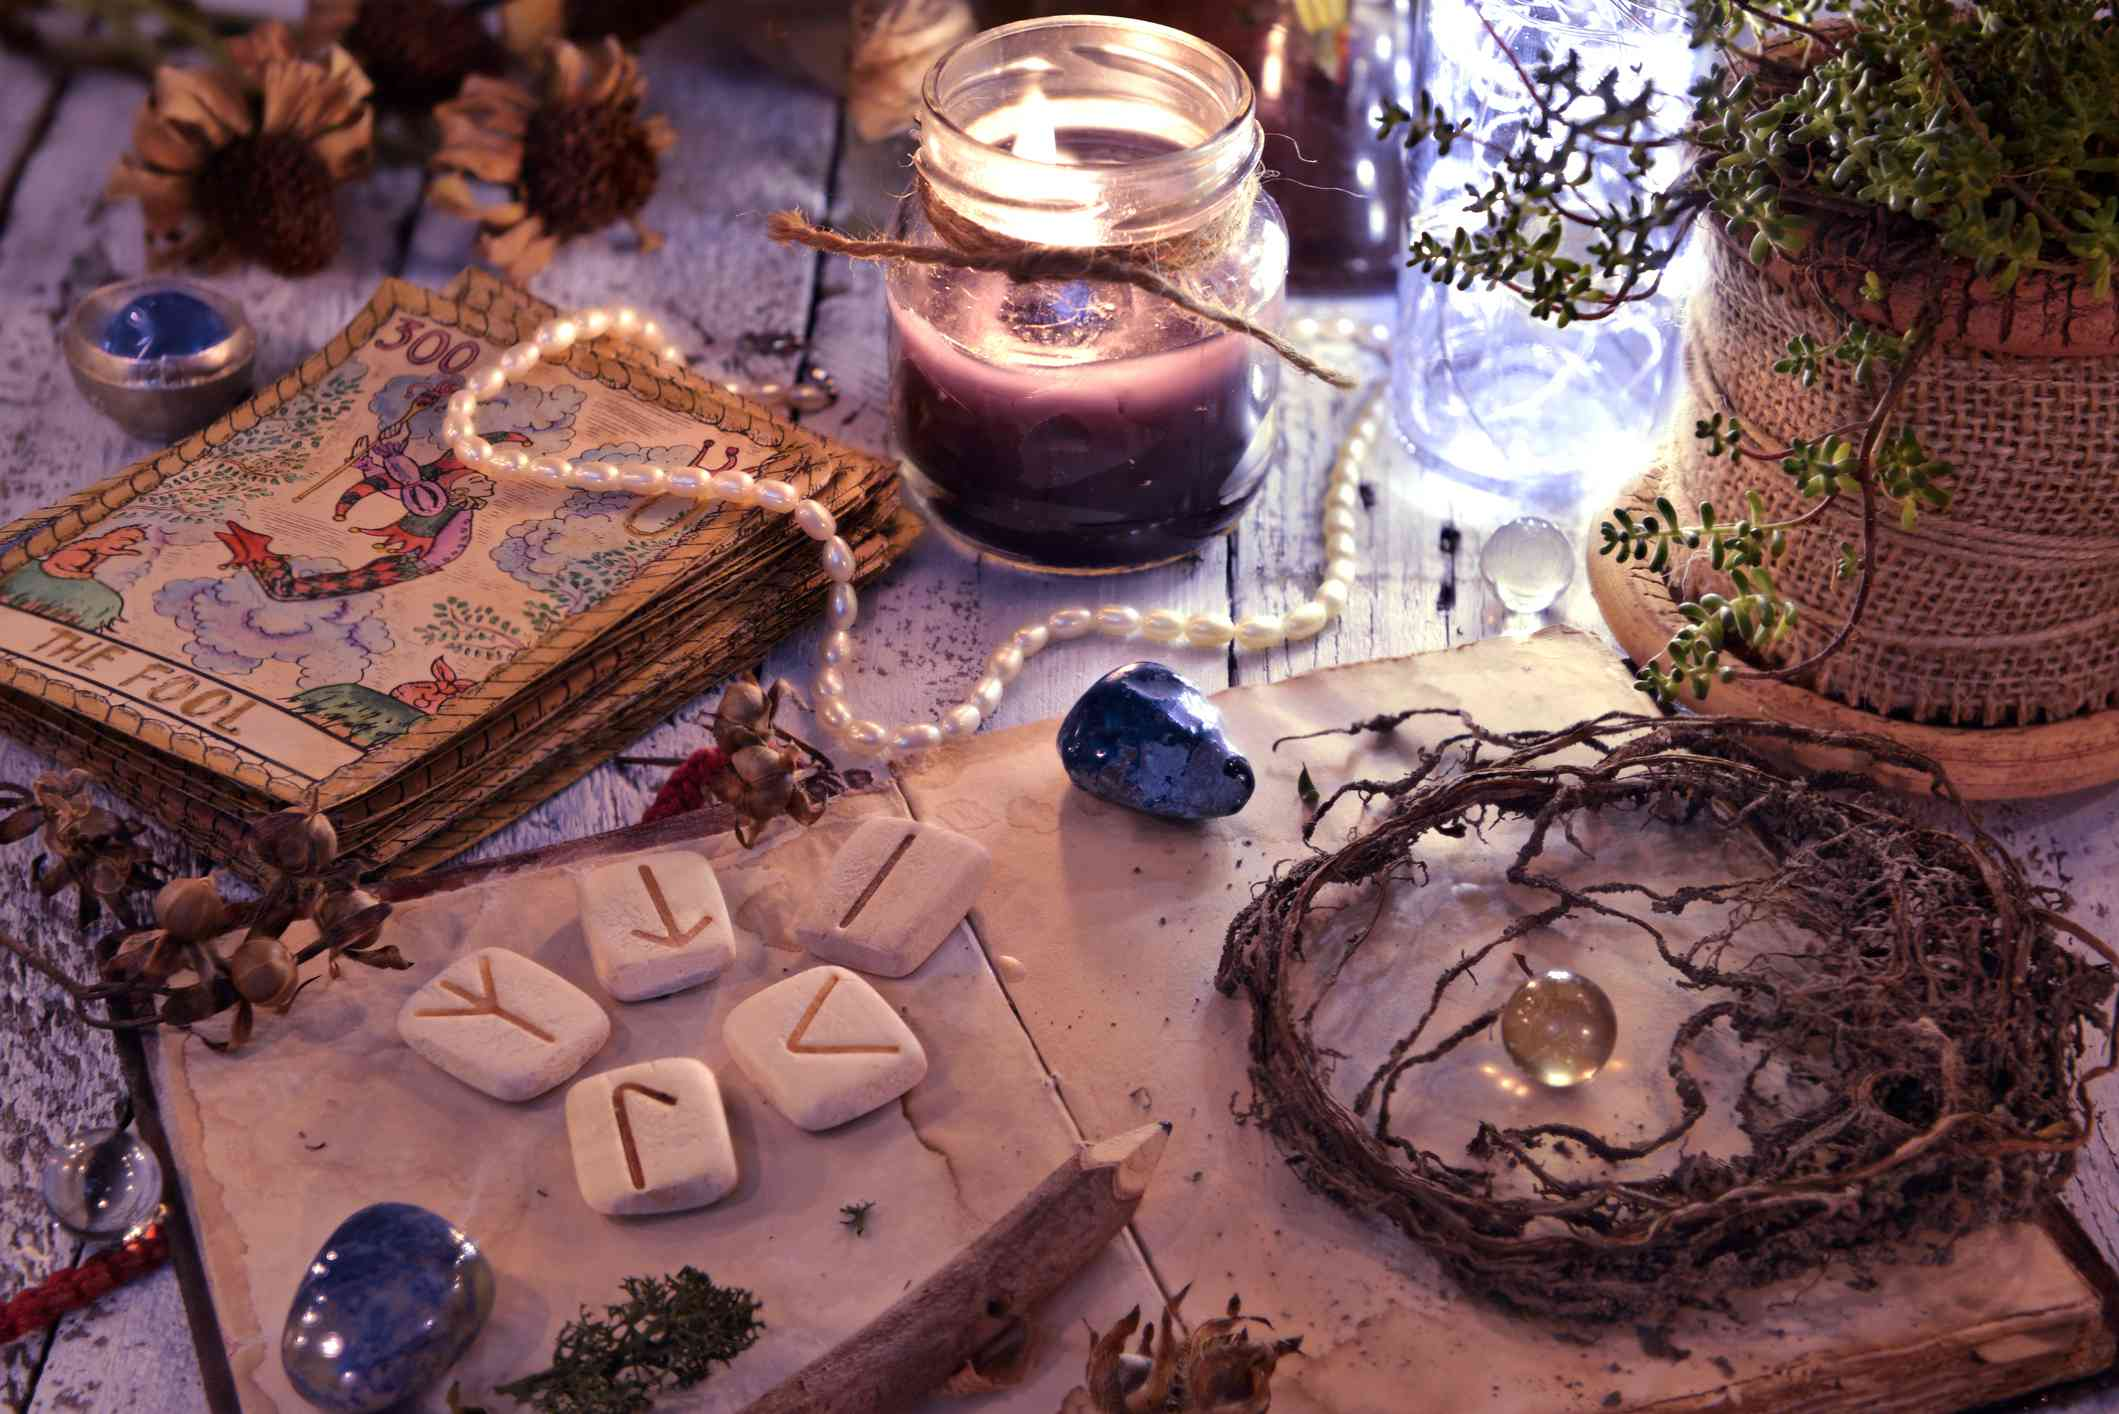 Old tarot cards deck, runes and dried roots with book on table